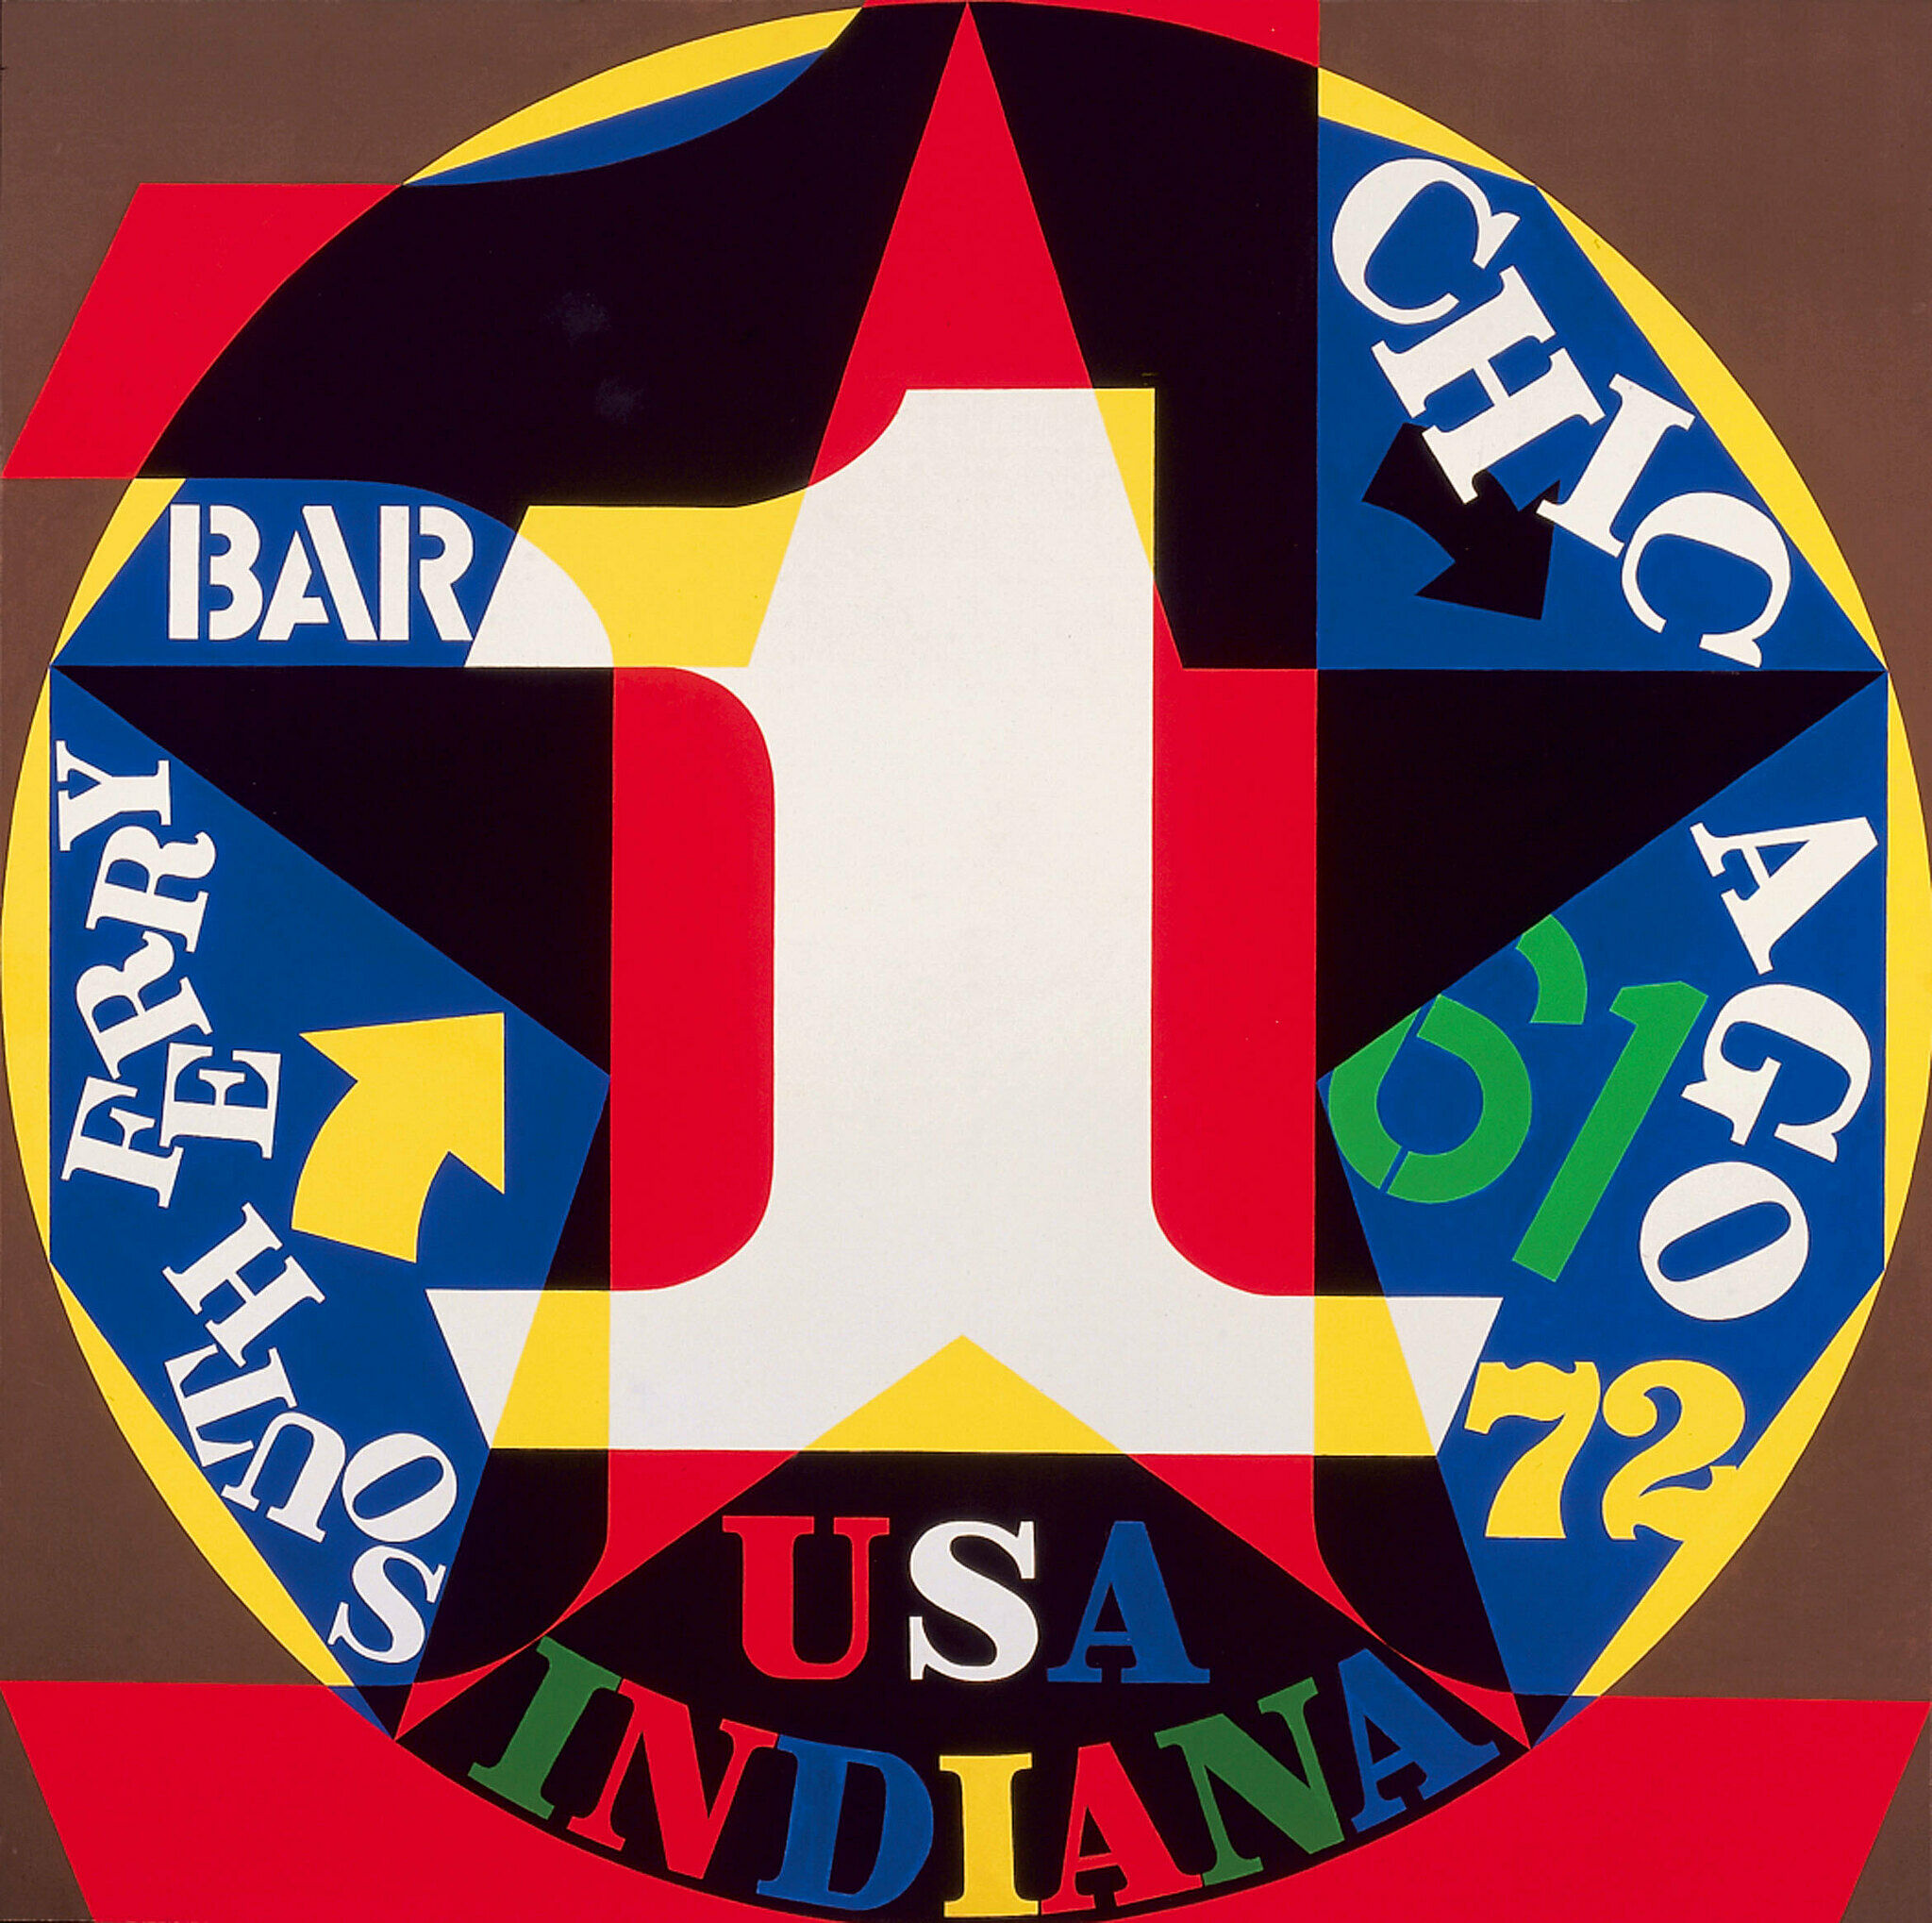 Artwork by Robert Indiana based on a subway sign.